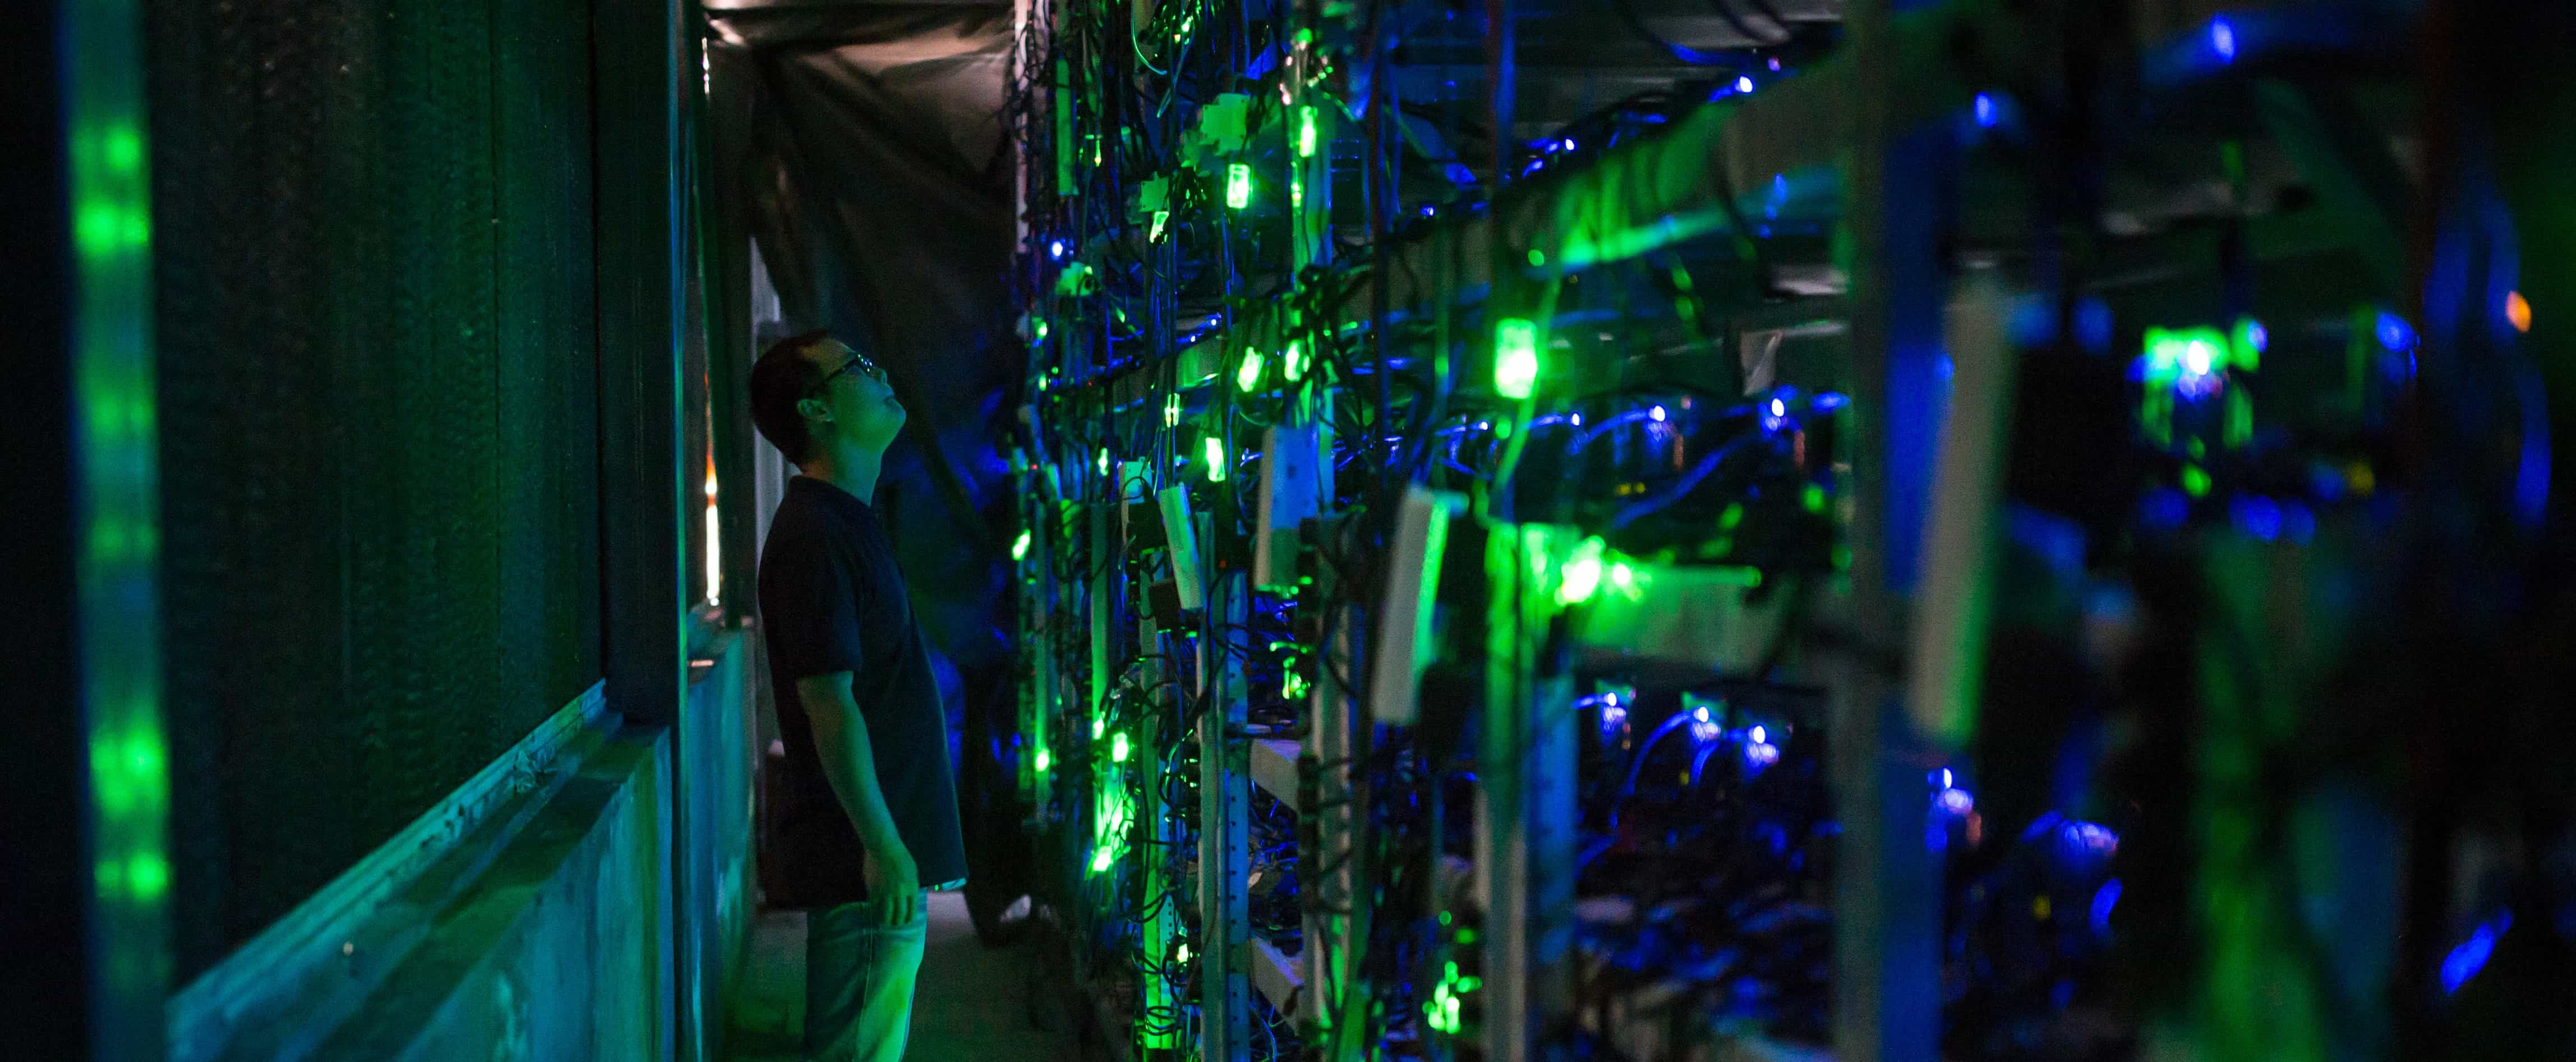 A Bitcoin farm in Sichuan, China, August 2017 (Photo: Paul Ratje/Getty)